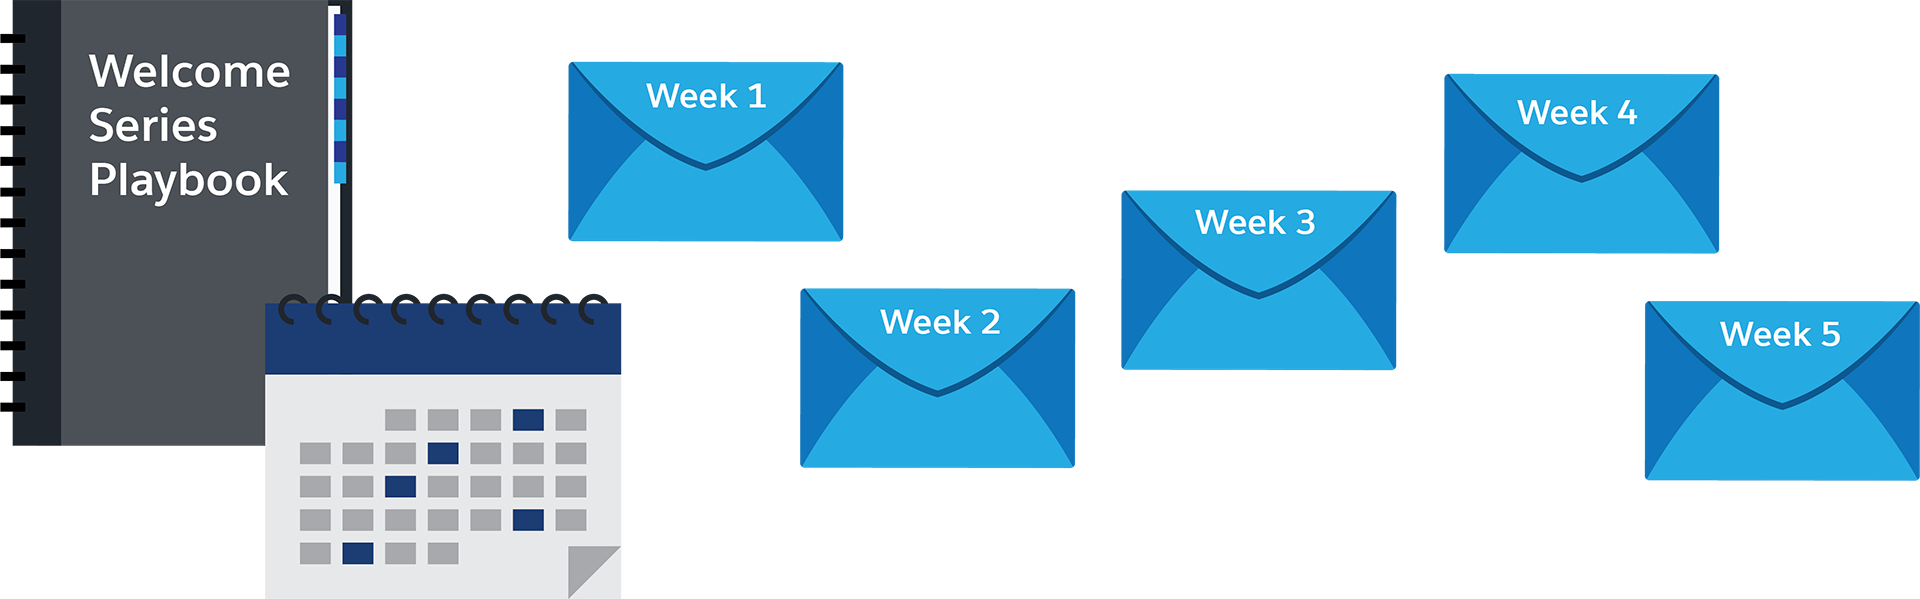 Calendar, book, and emails, creating a series of welcome emails sent at different times.